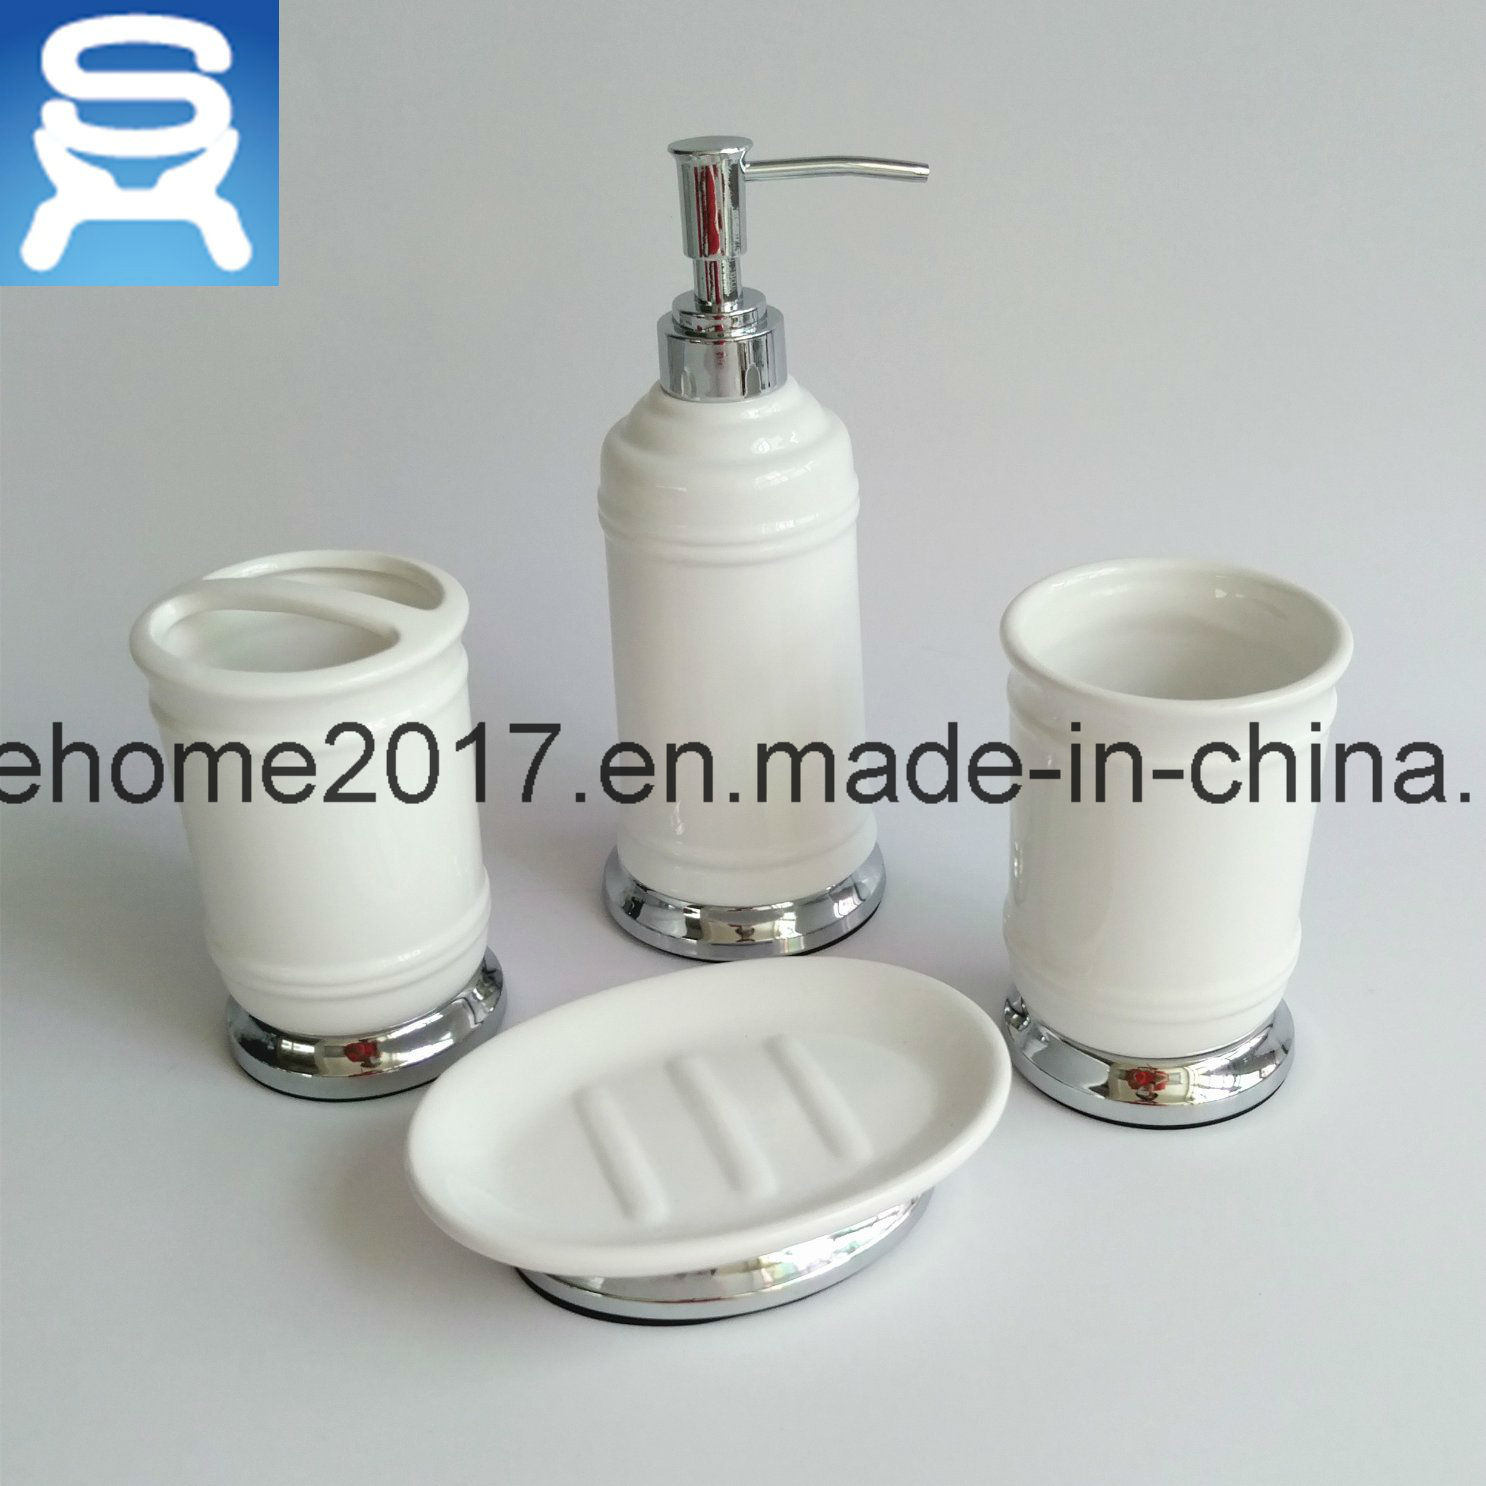 China Hot Chrome Plating Porcelain Bathroom Accessories Sets, Ceramic  Bathroom Set   China Bathroom Set, Ceramic Bathroom Set